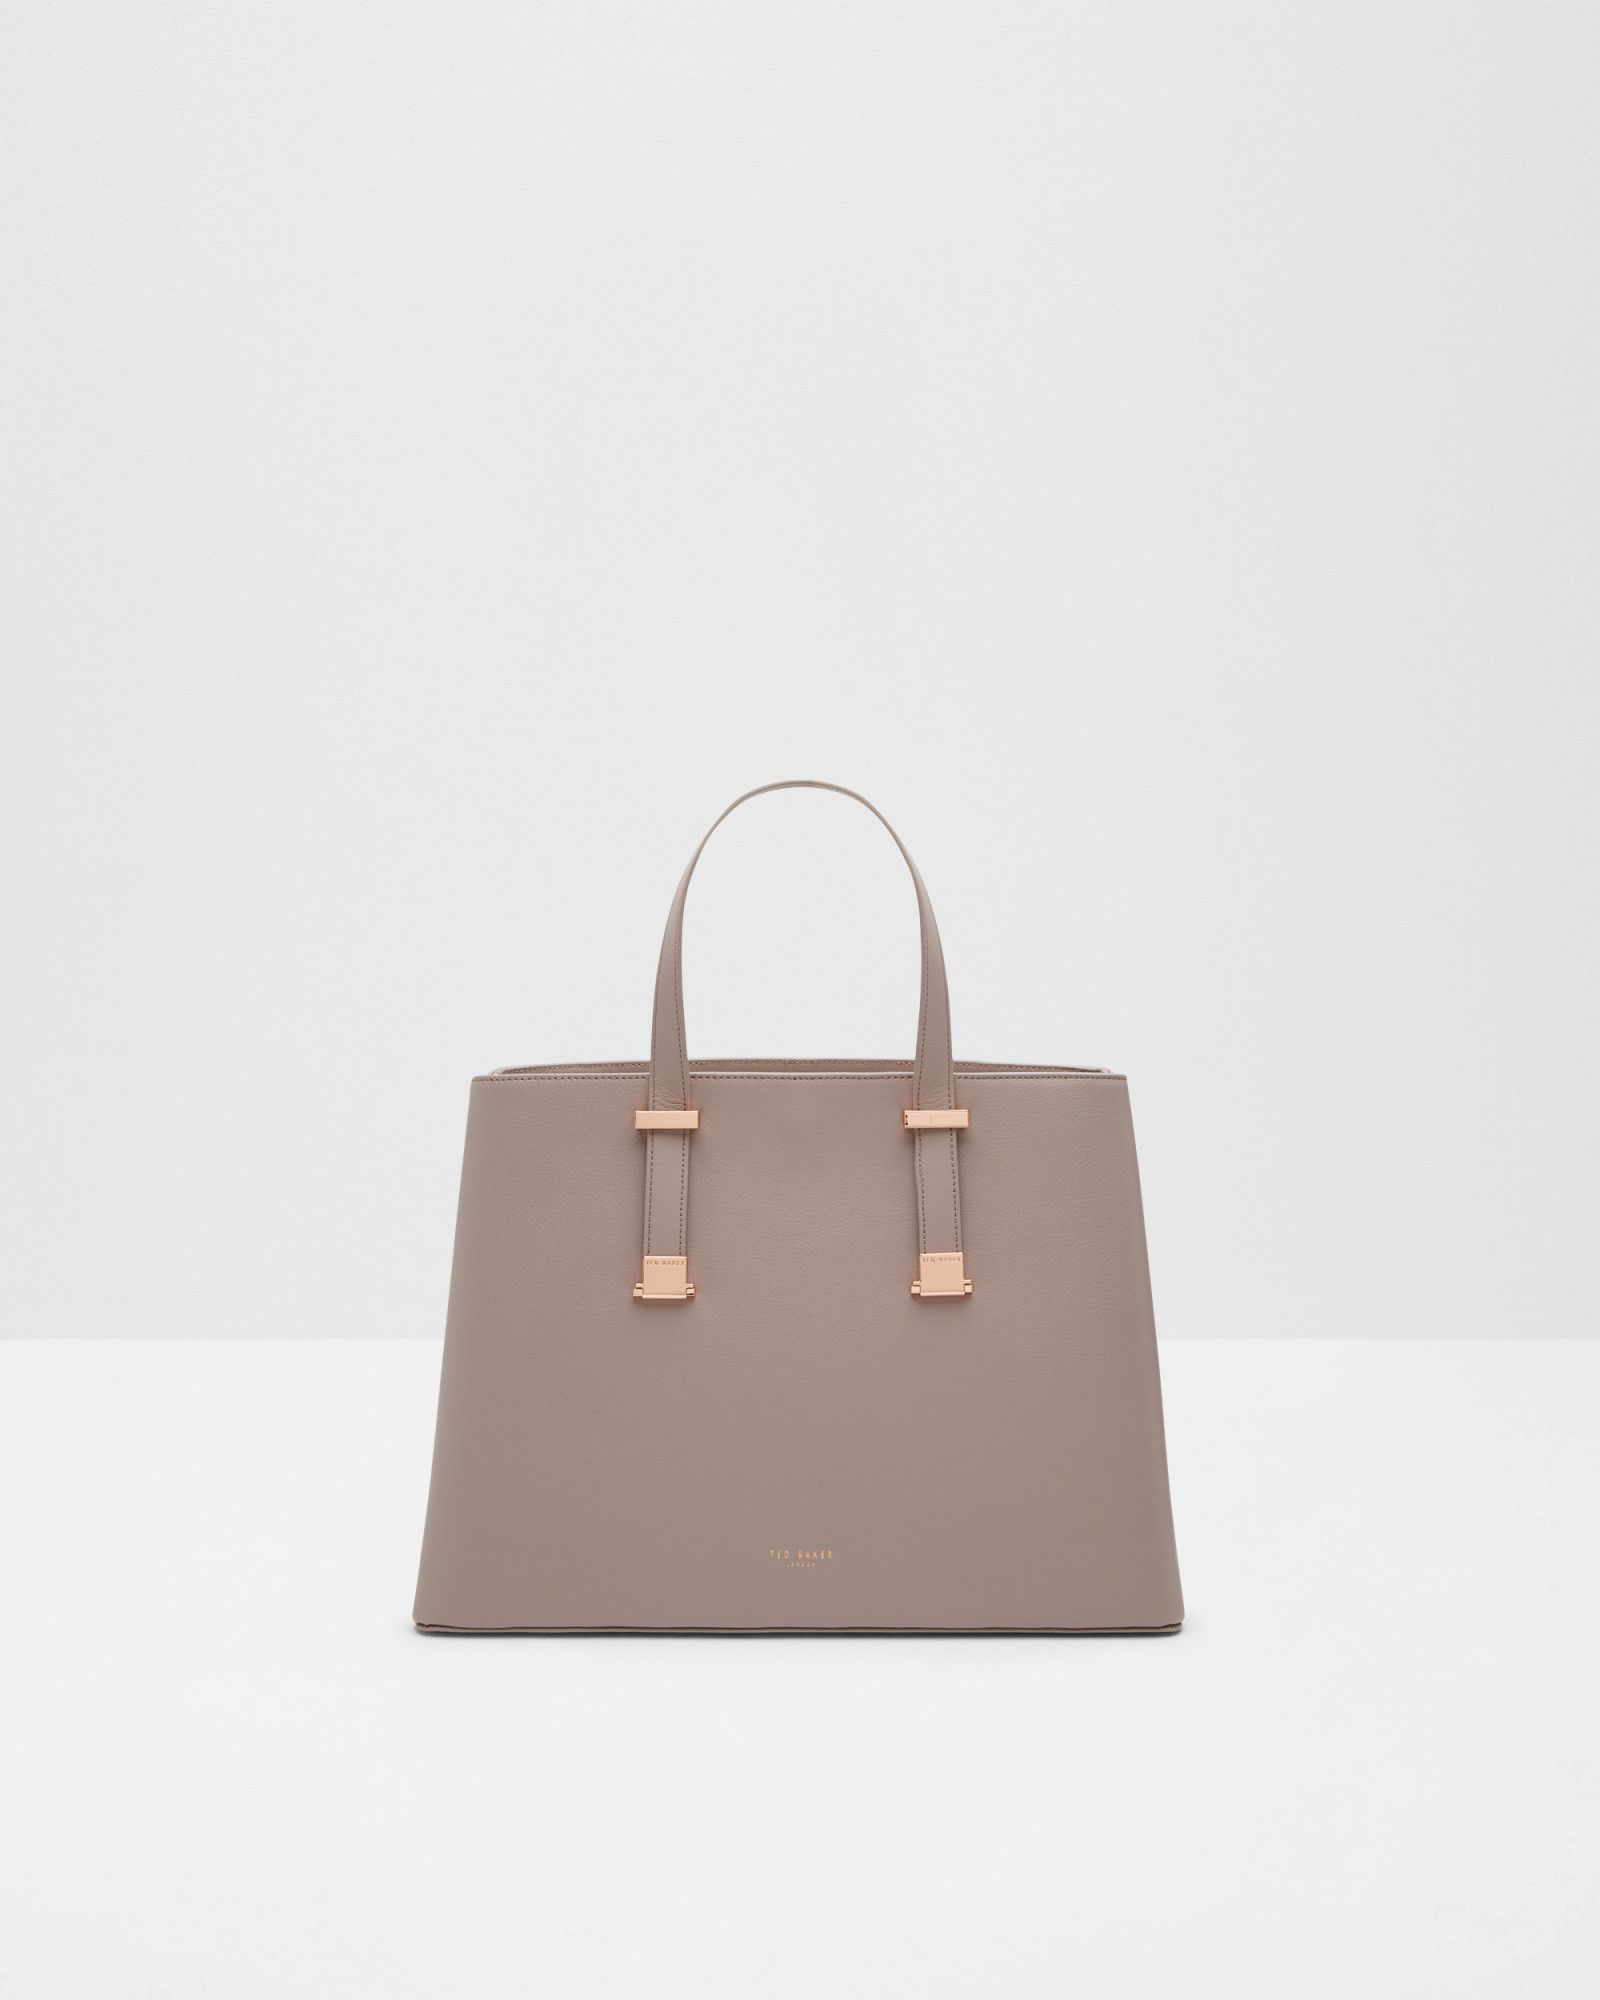 8f13f10ec Co Uk Ted Baker Handbags Shoulder Bags Shoes. Ted Baker Leather Top Handle  Tote ...